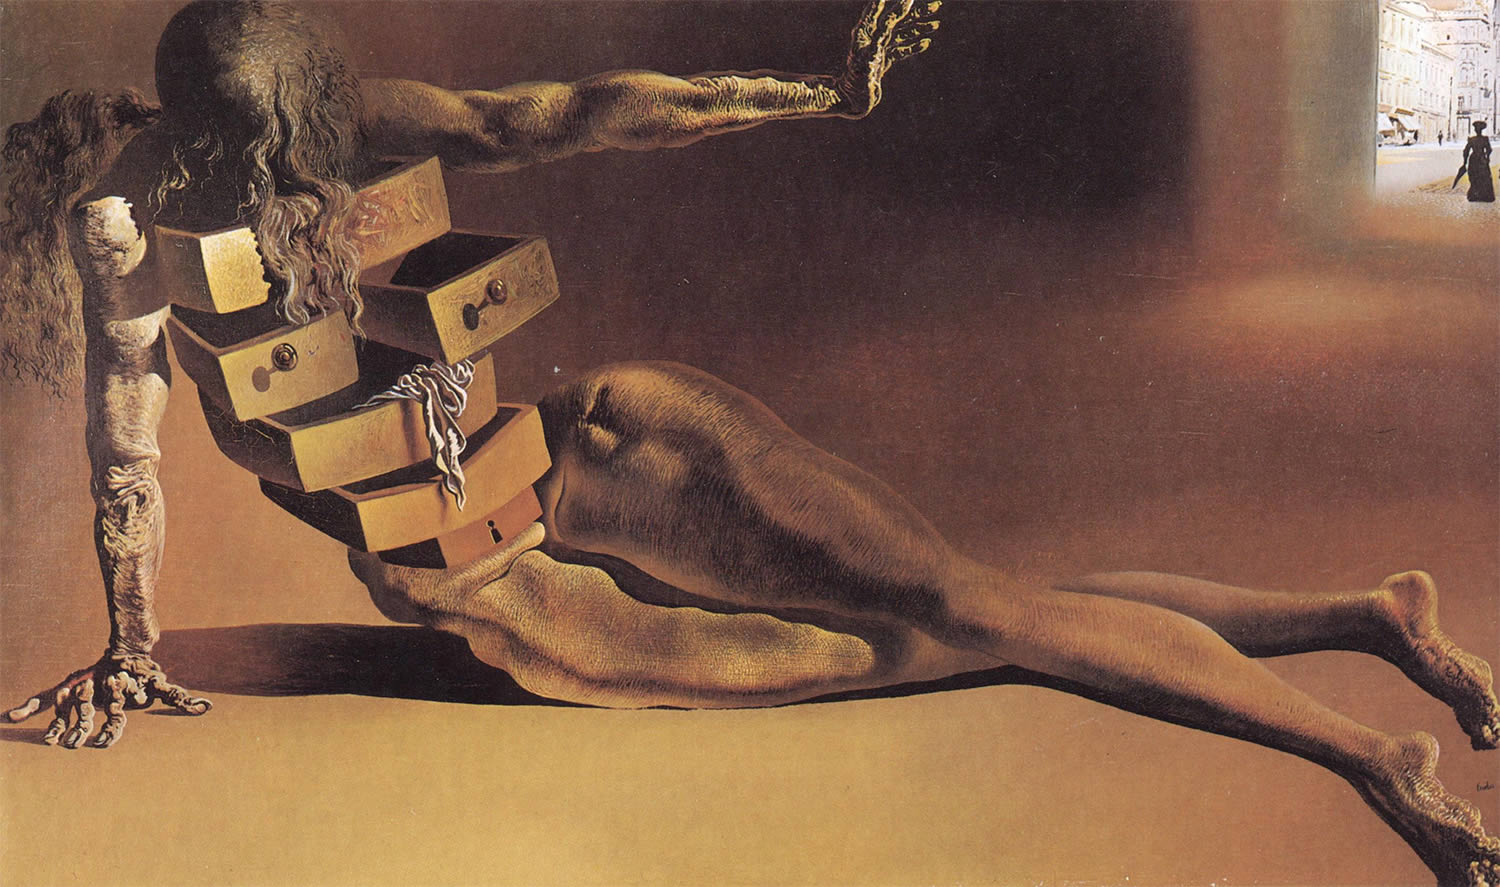 Anthropomorphic Chest of Drawers by dali